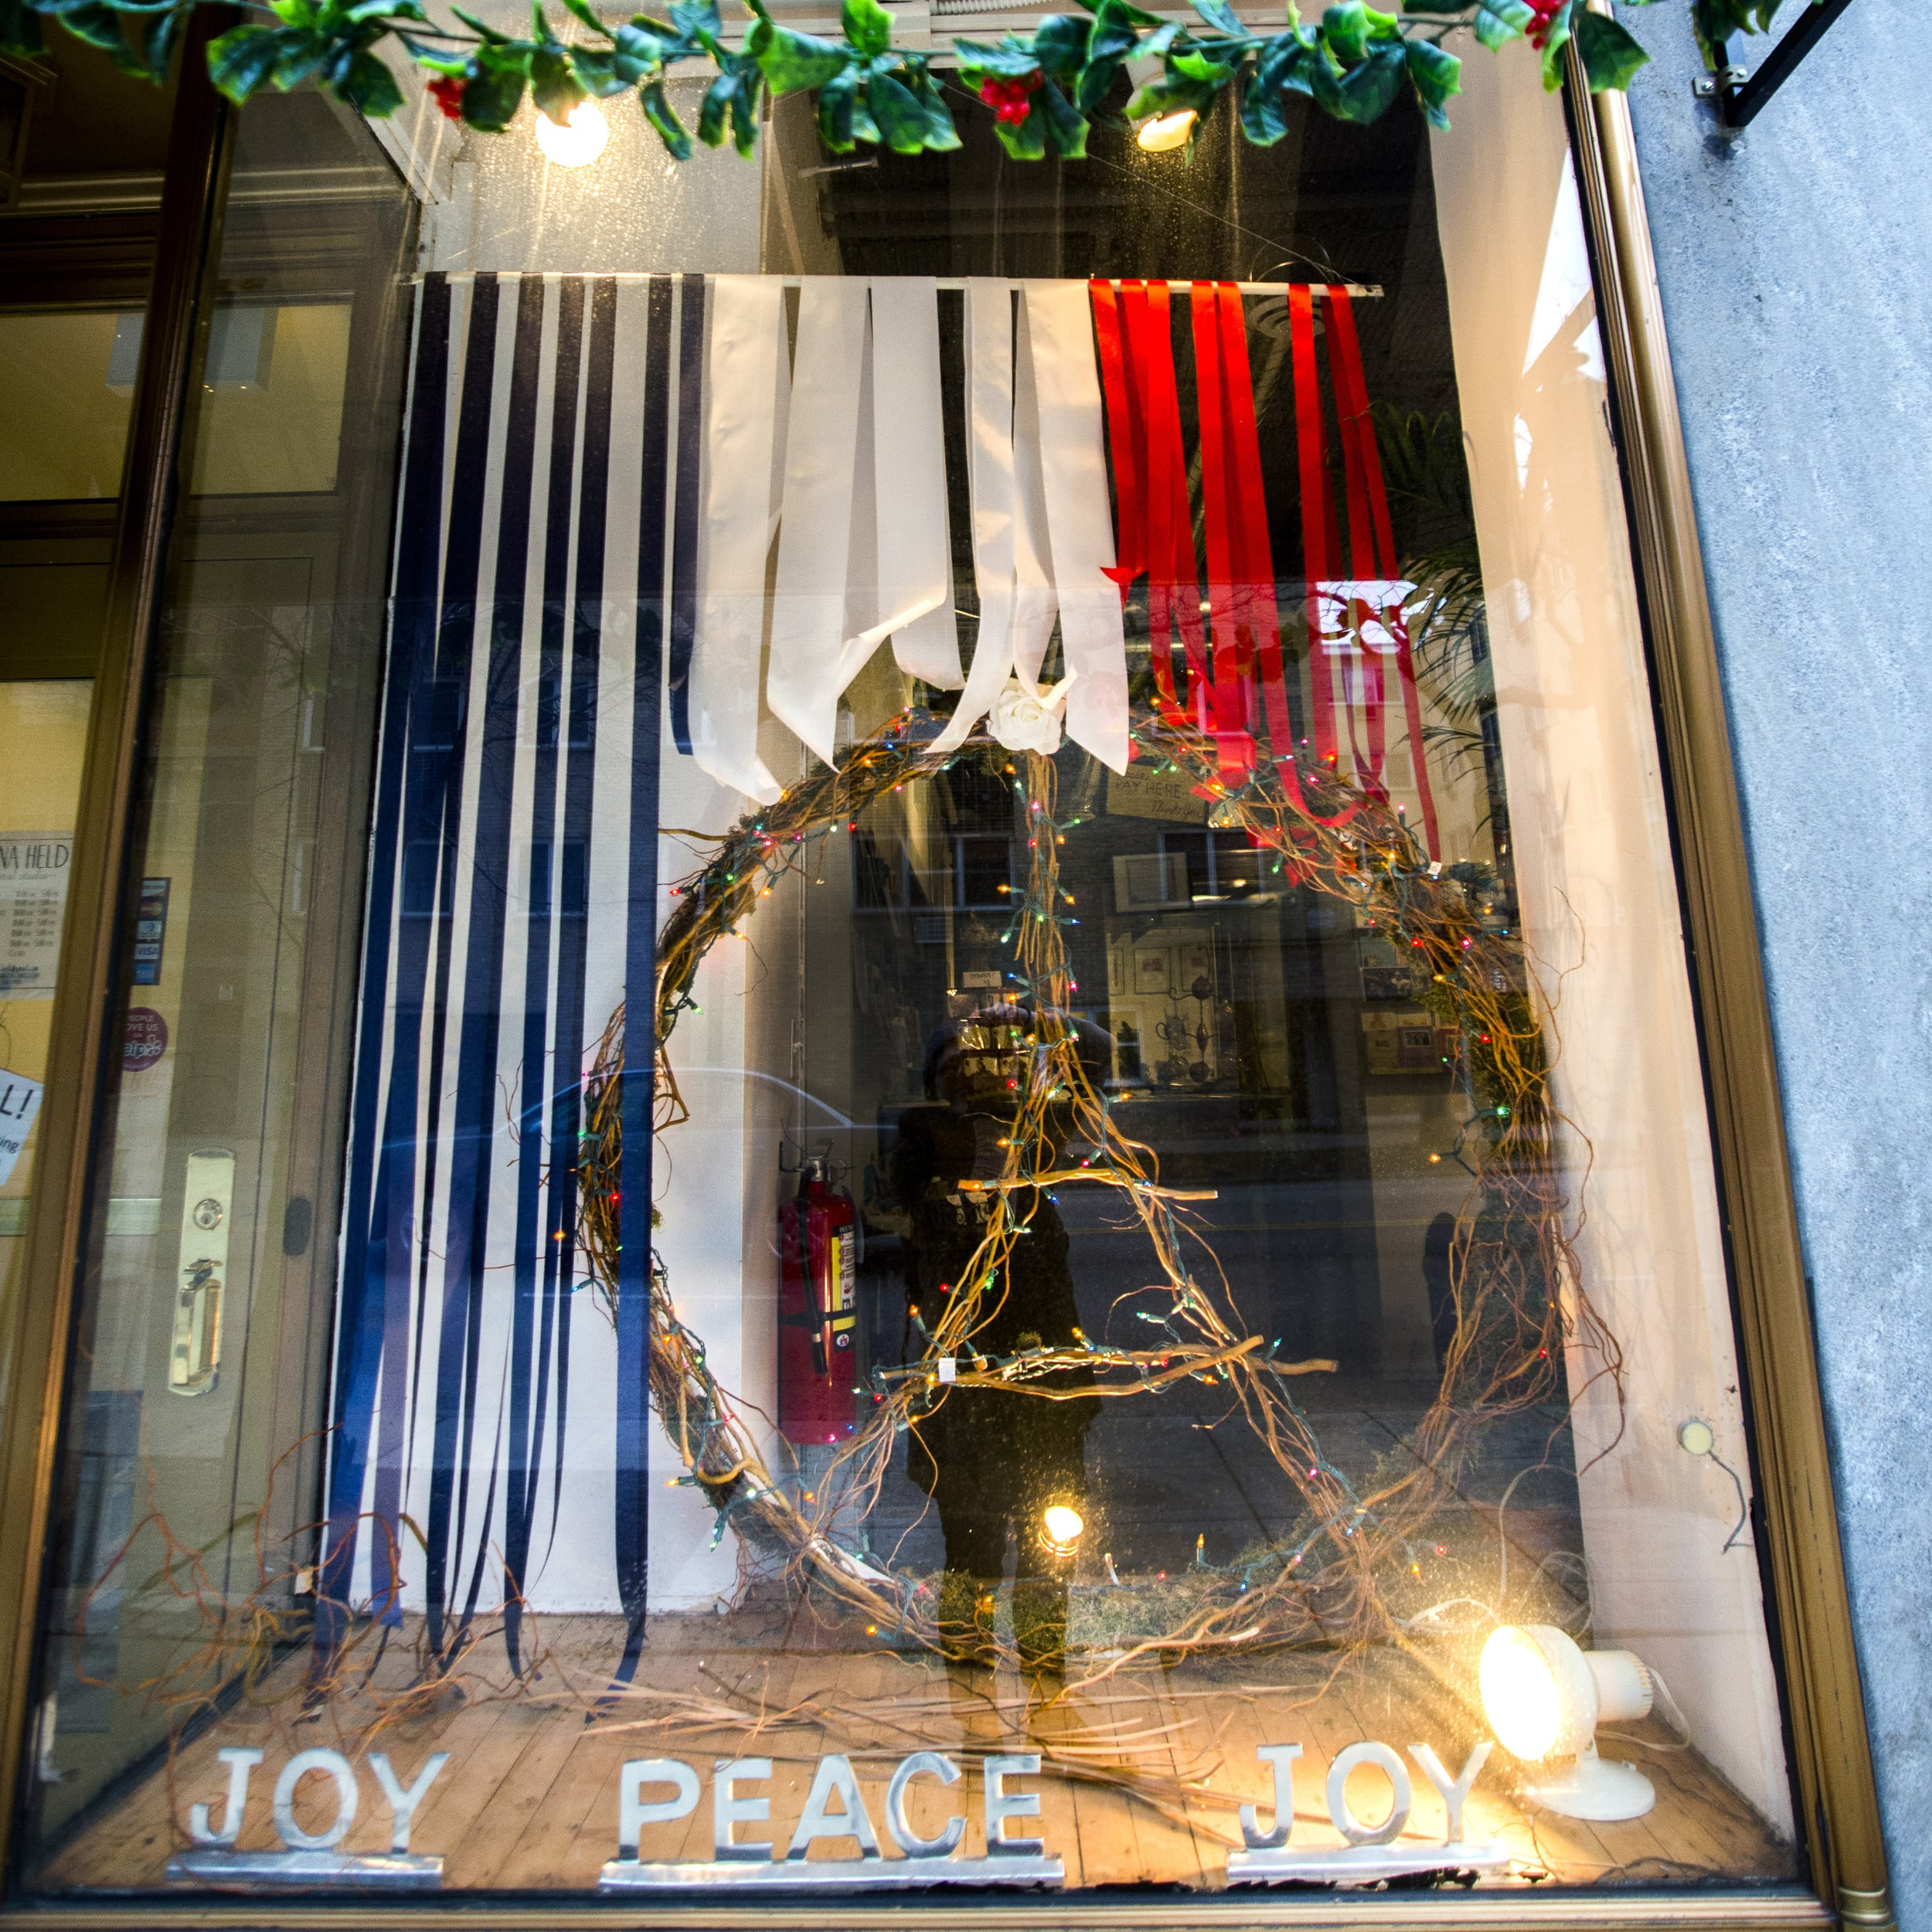 It took a little wrangling, but our latest window installation is all about peace.